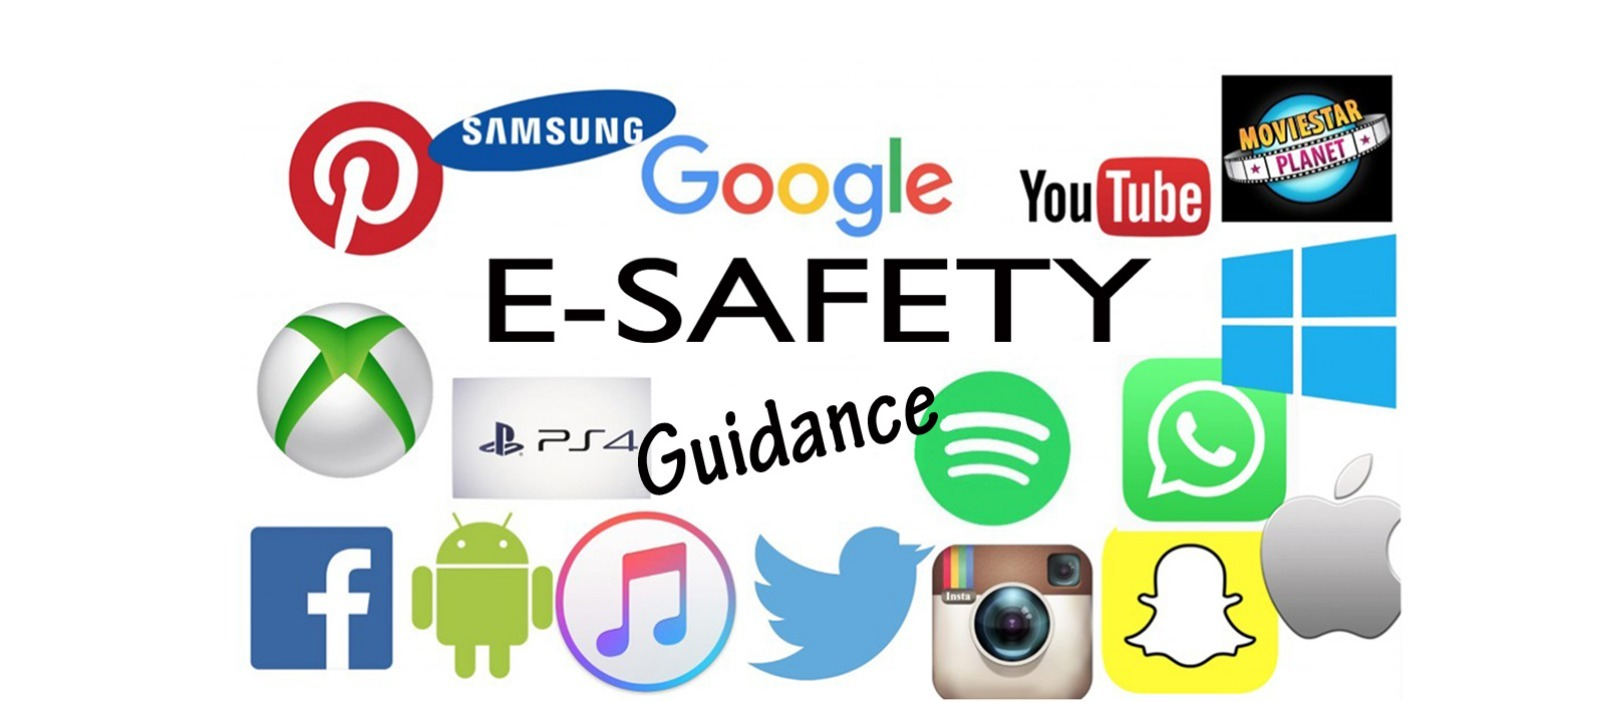 Supporting image for E-Safety Image Banner